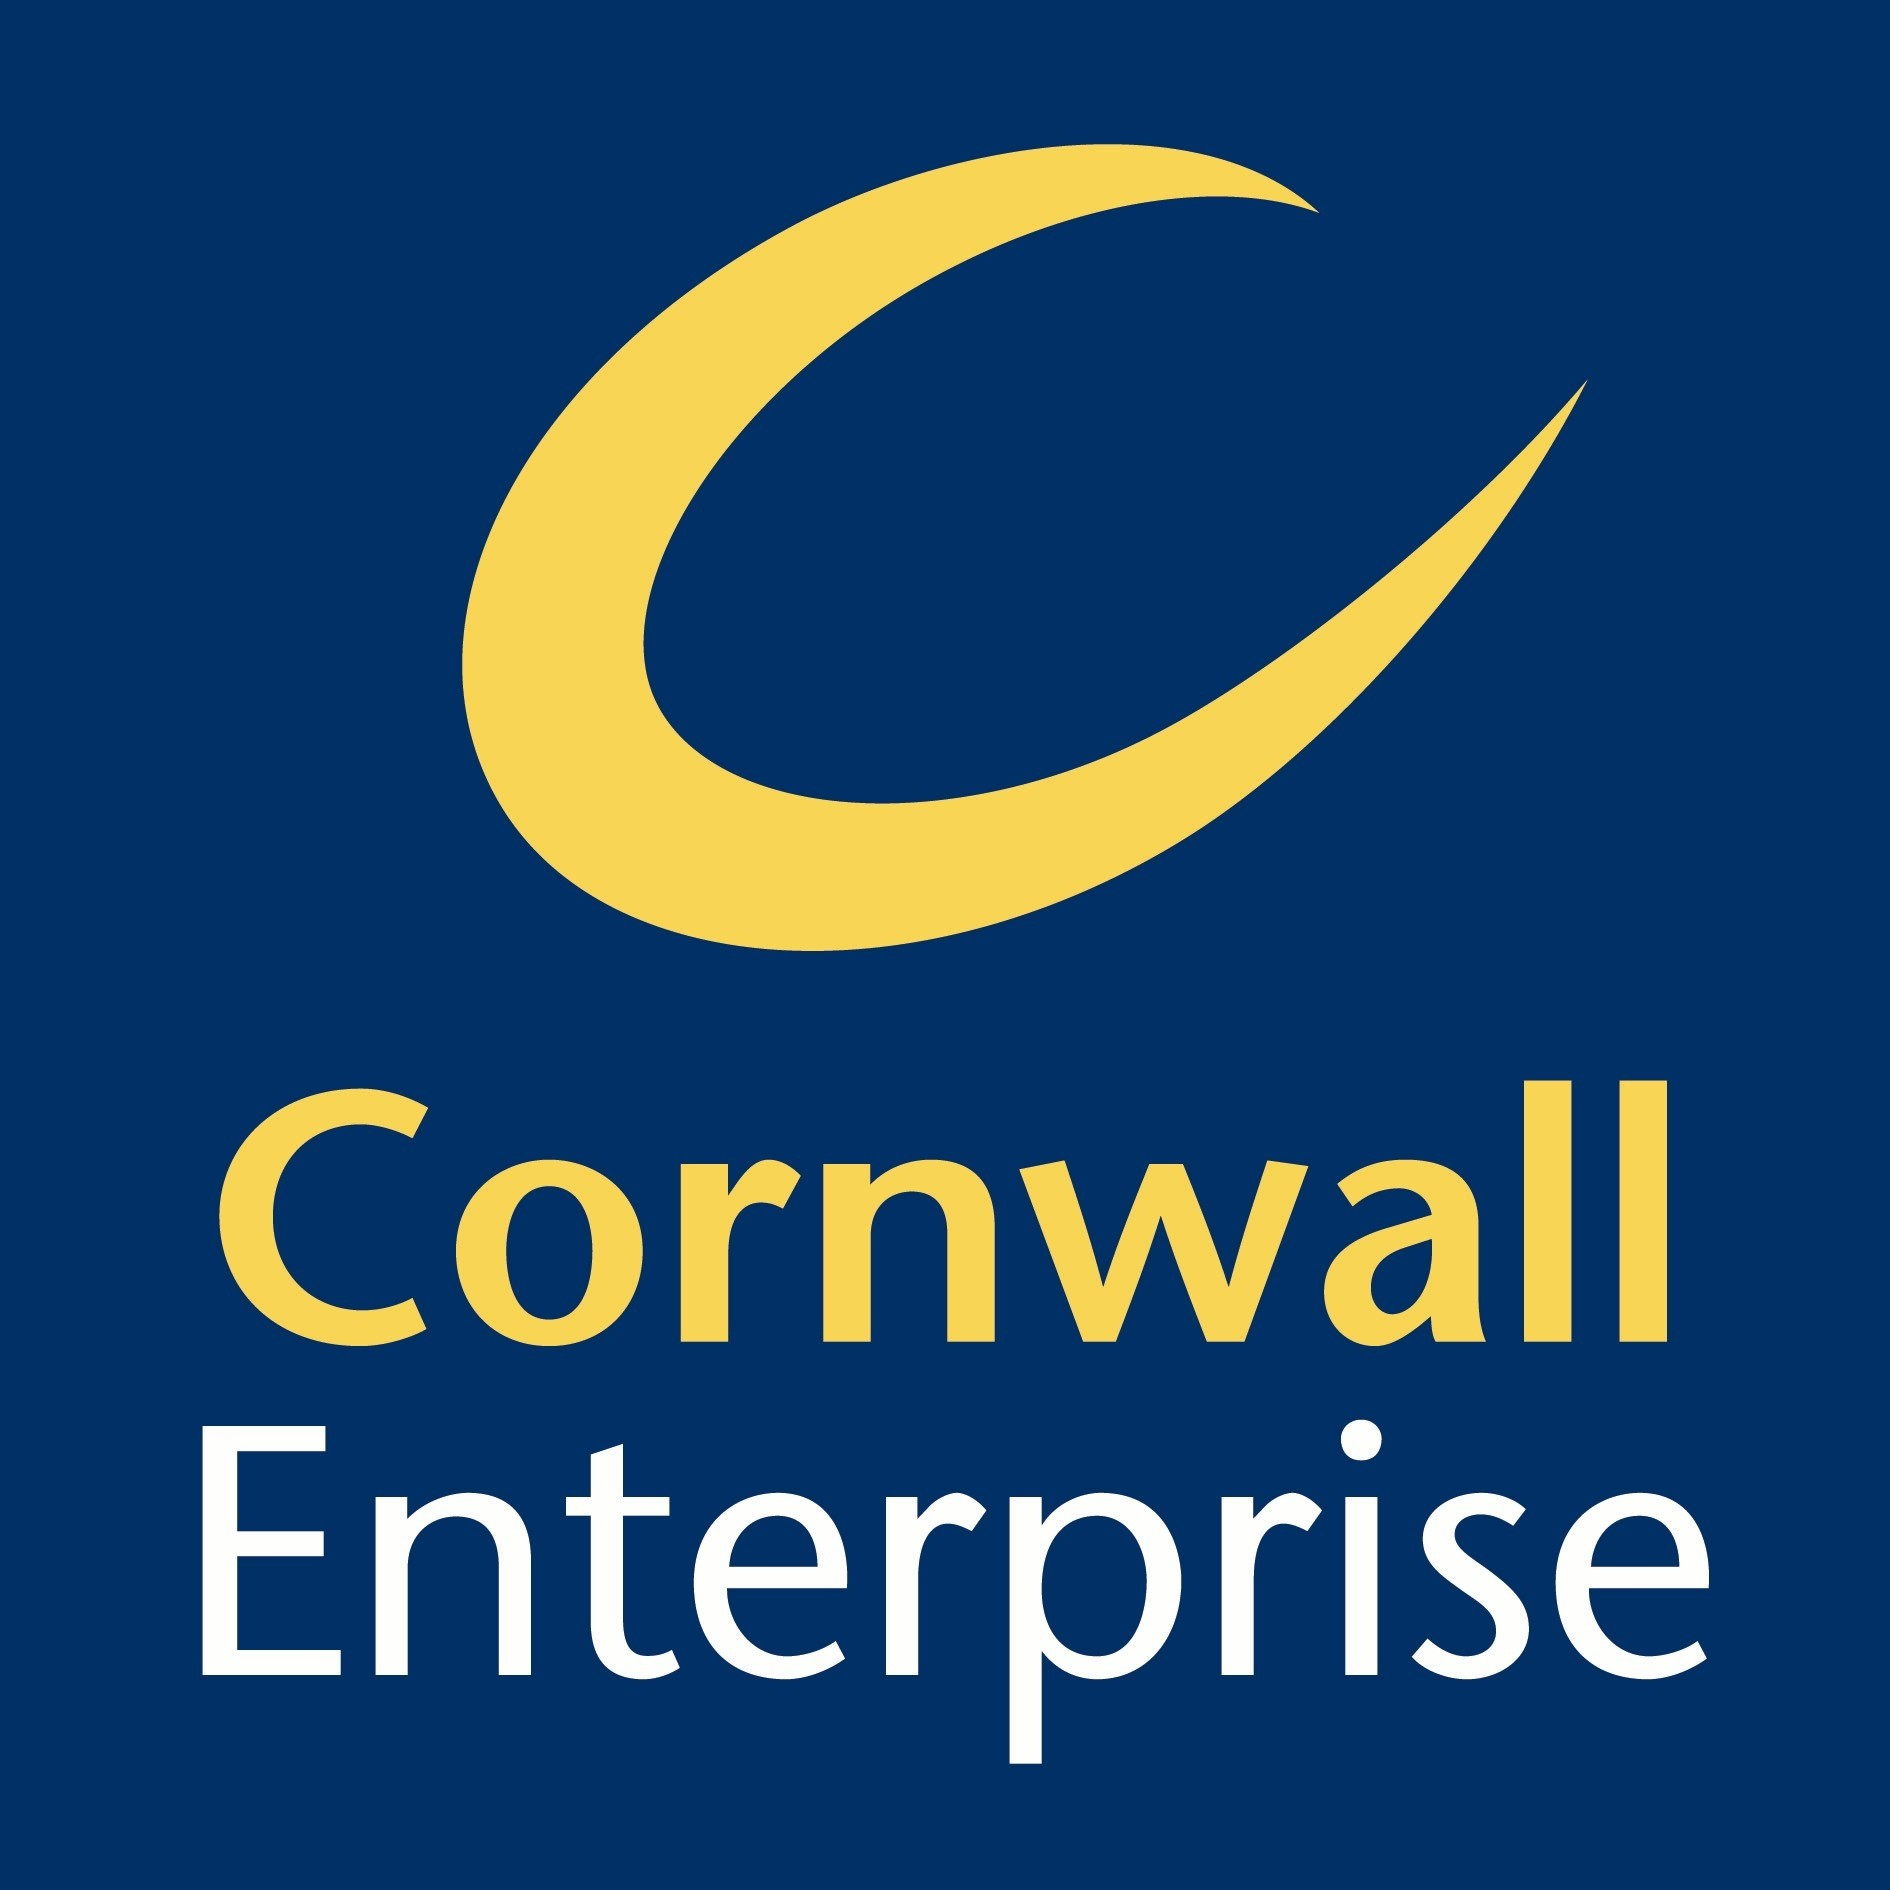 Cornwall Enterprise logo